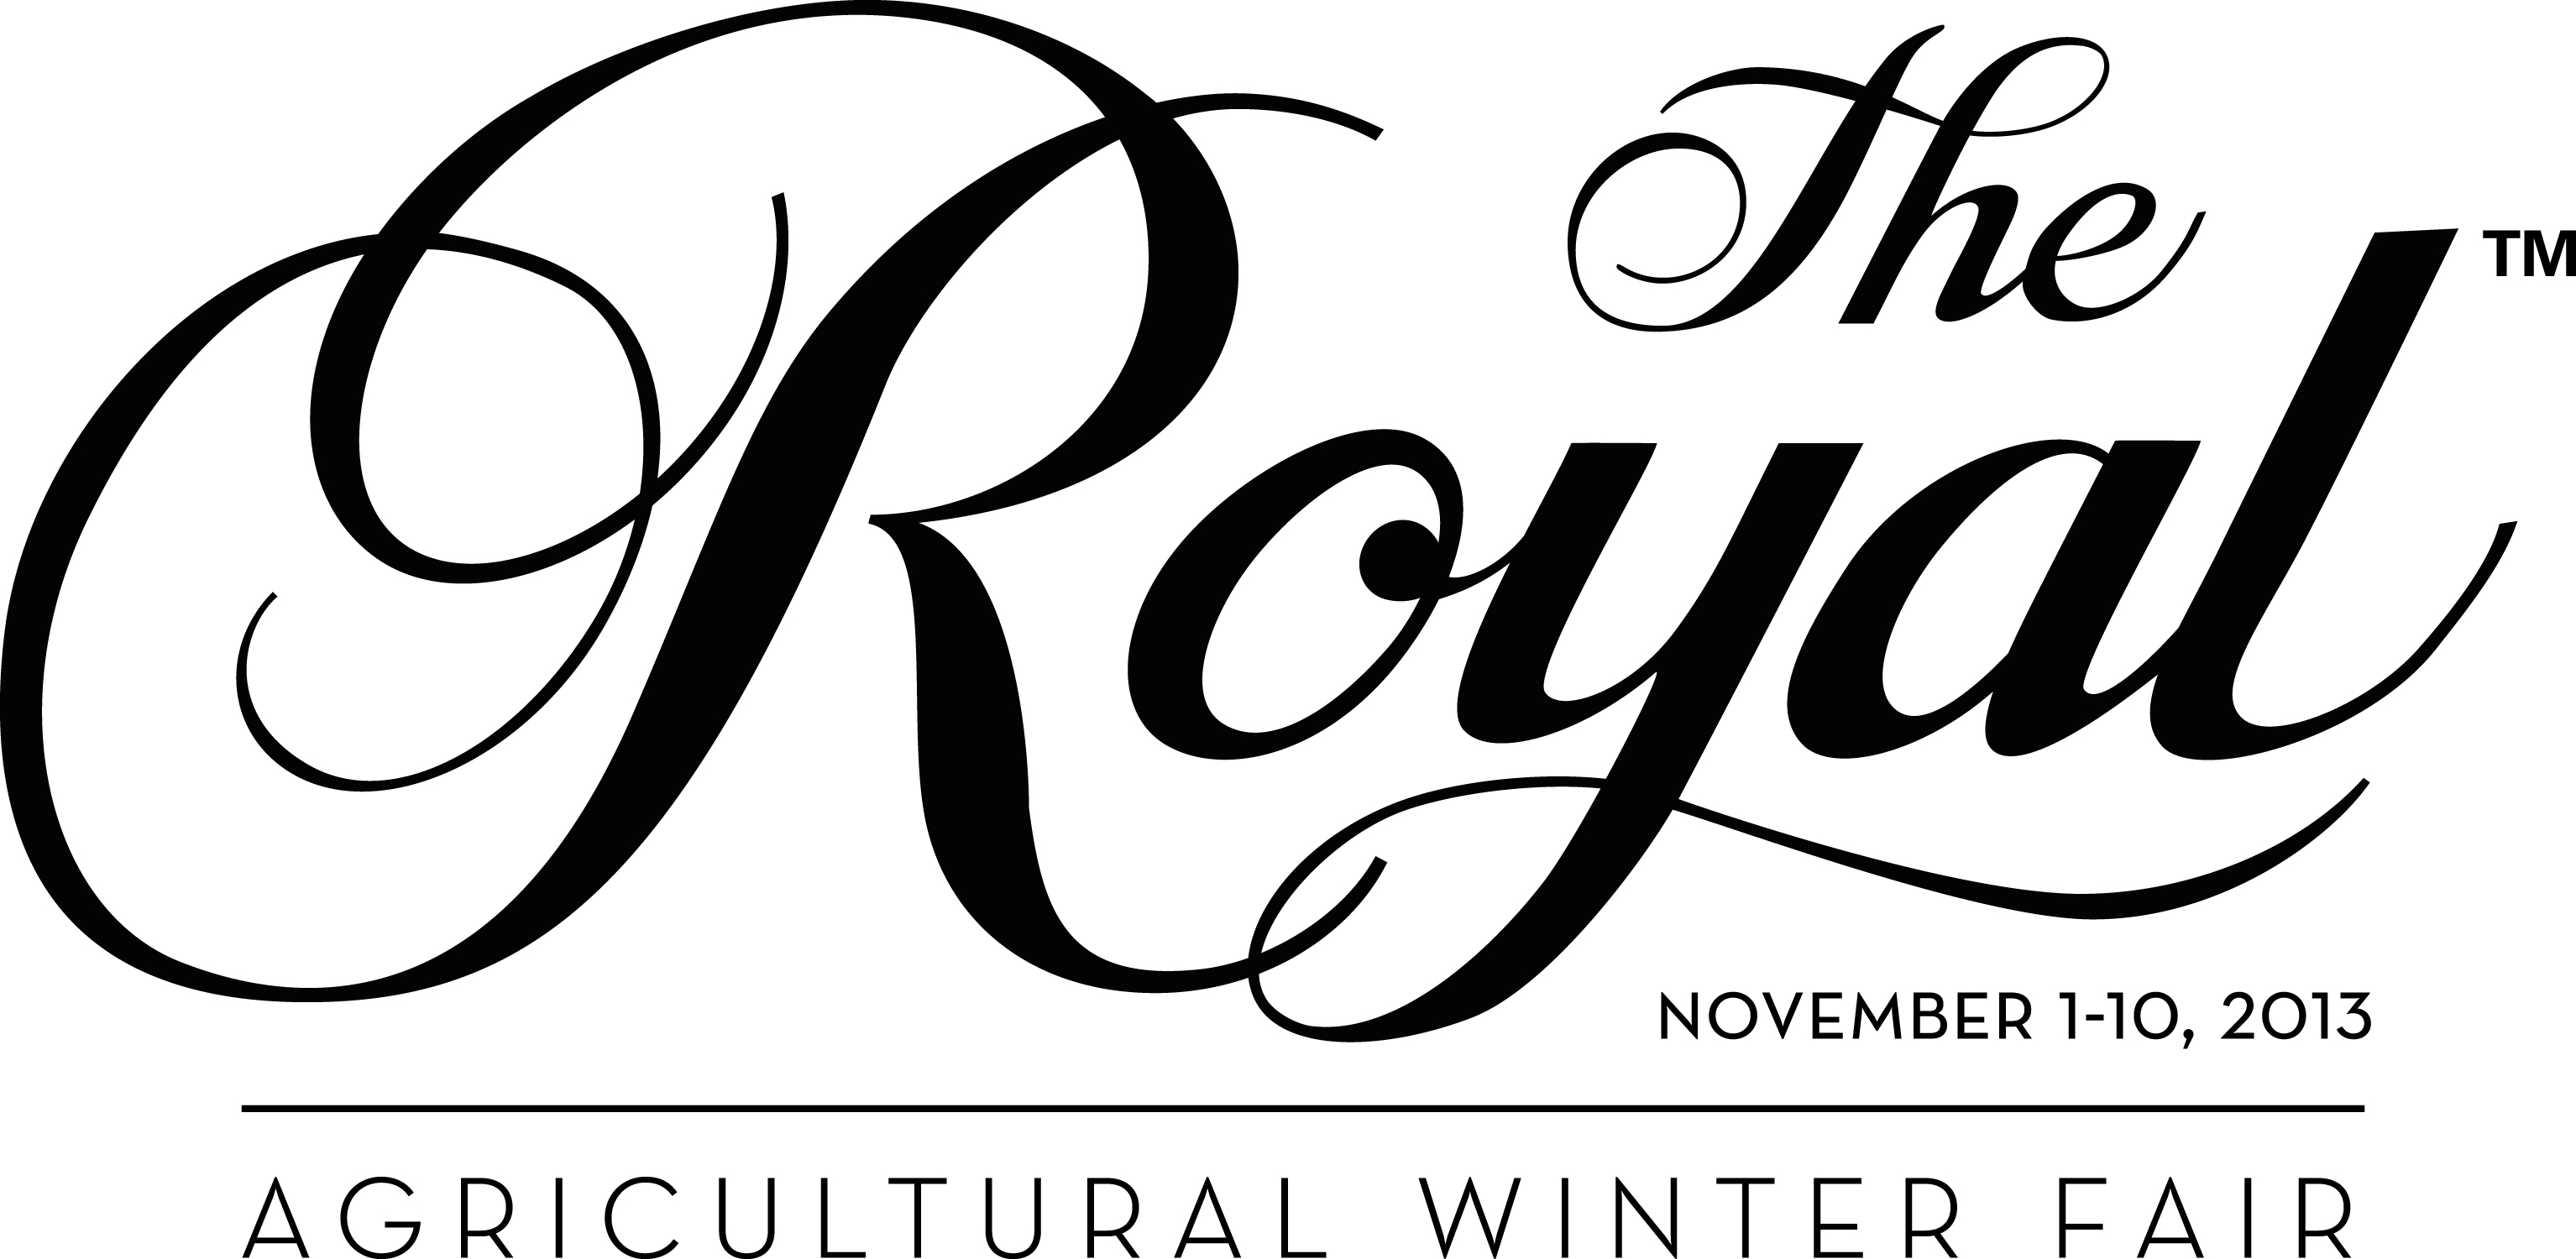 What to do in Toronto The Royal Agricultural Winter Fair